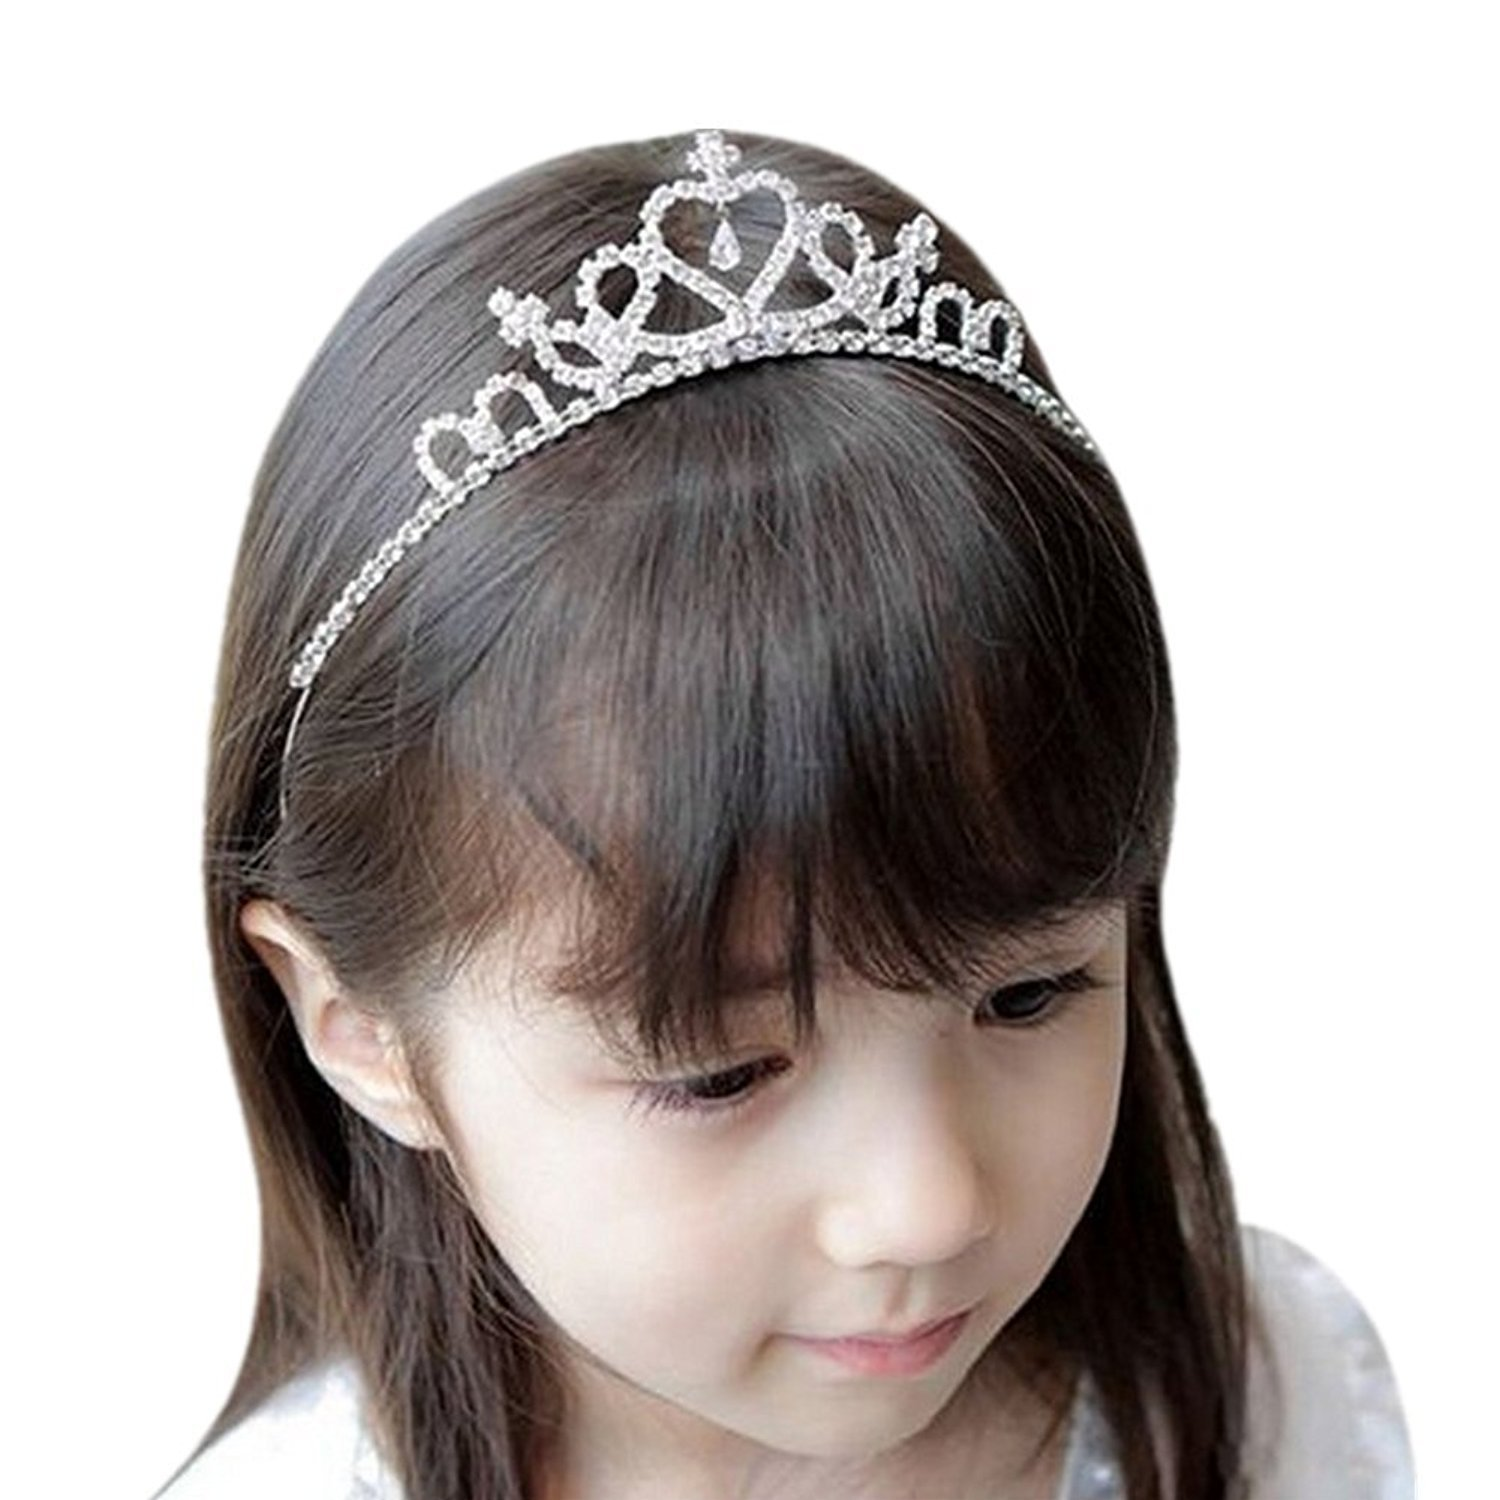 Castle Fairy Flower Girl Rhinestones Crown Headband Tiara Wedding Party Children Bridesmaid (one size, silver)